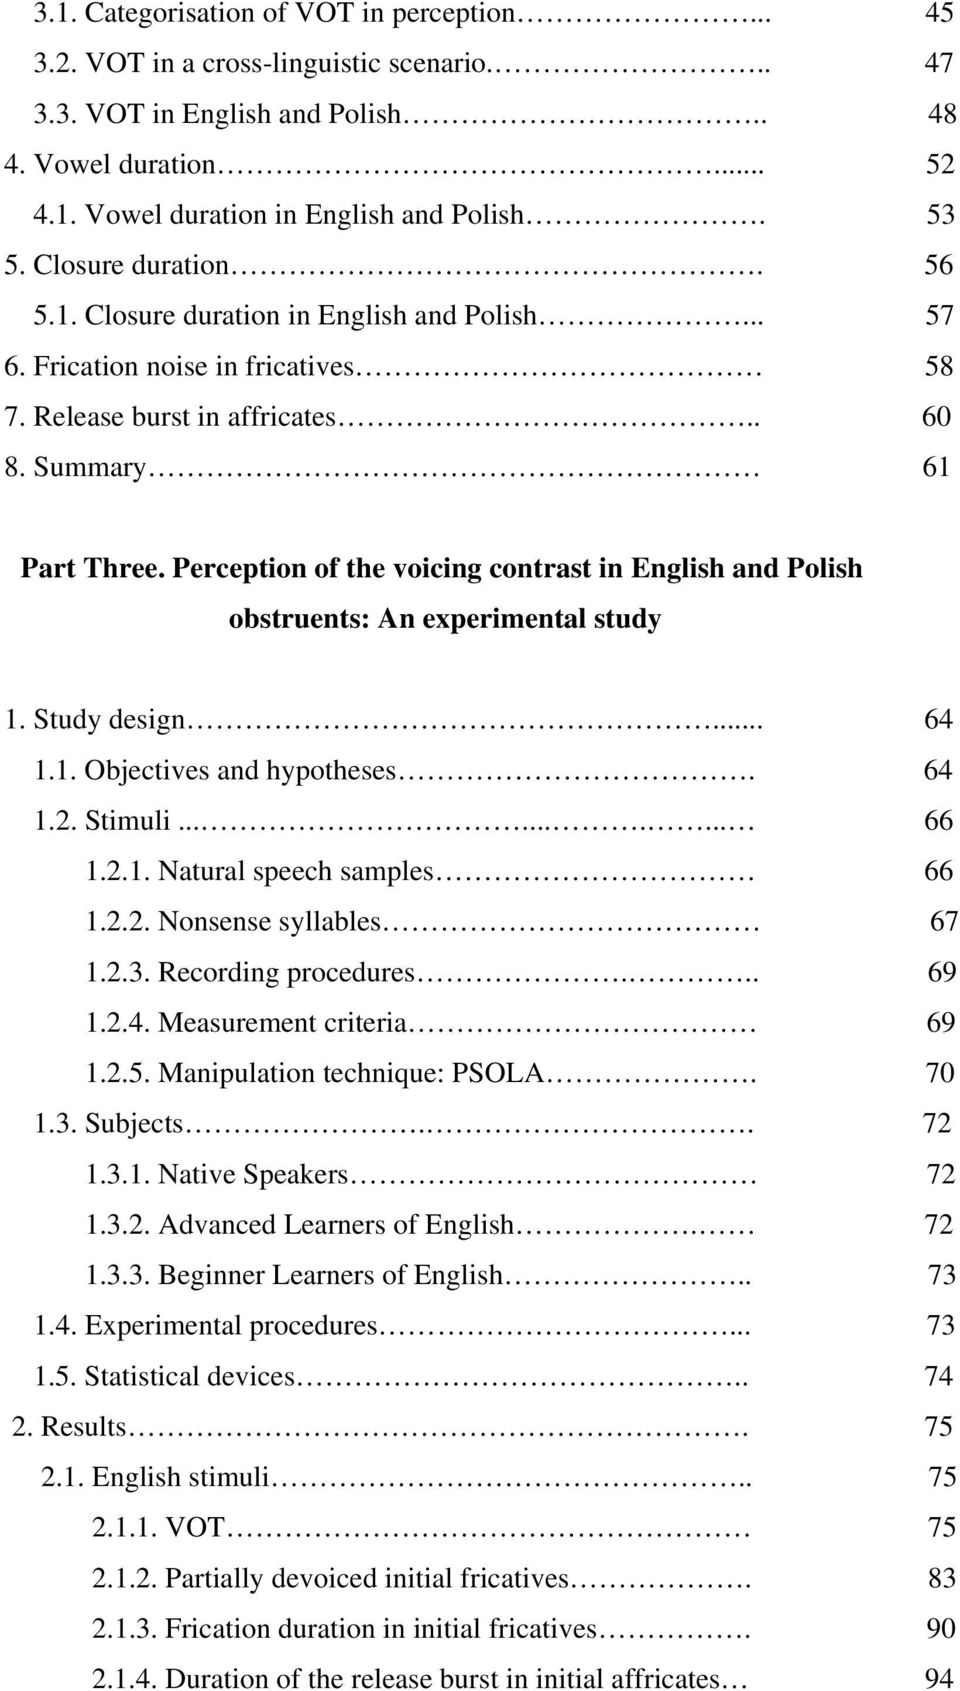 Perception of the voicing contrast in English and Polish obstruents: An experimental study 1. Study design... 64 1.1. Objectives and hypotheses. 64 1.2. Stimuli.......... 66 1.2.1. Natural speech samples 66 1.